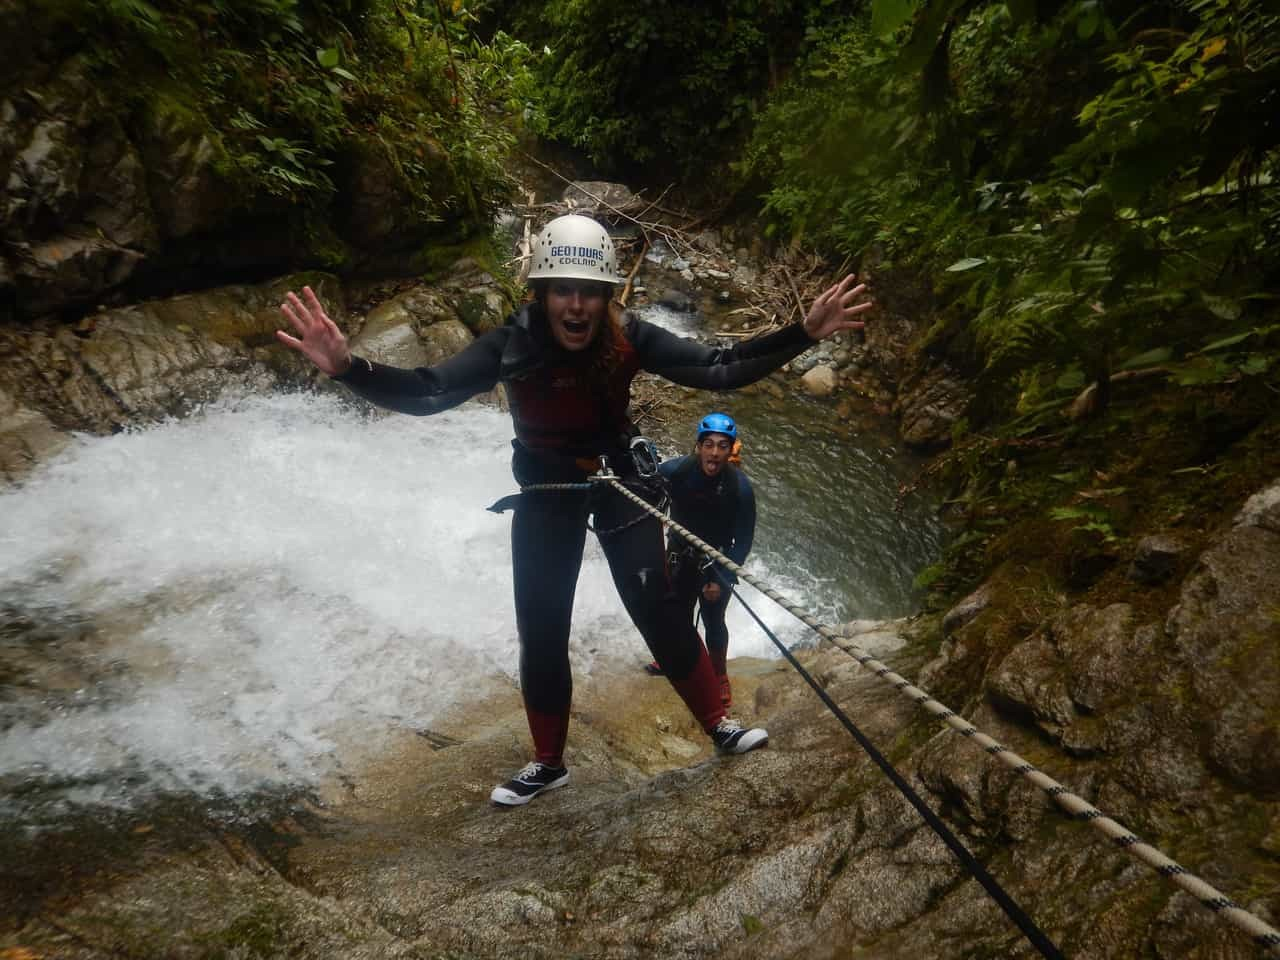 Taking a break in the mid-air to take delight in nature's beauty - Takiri Travel, Ecuador